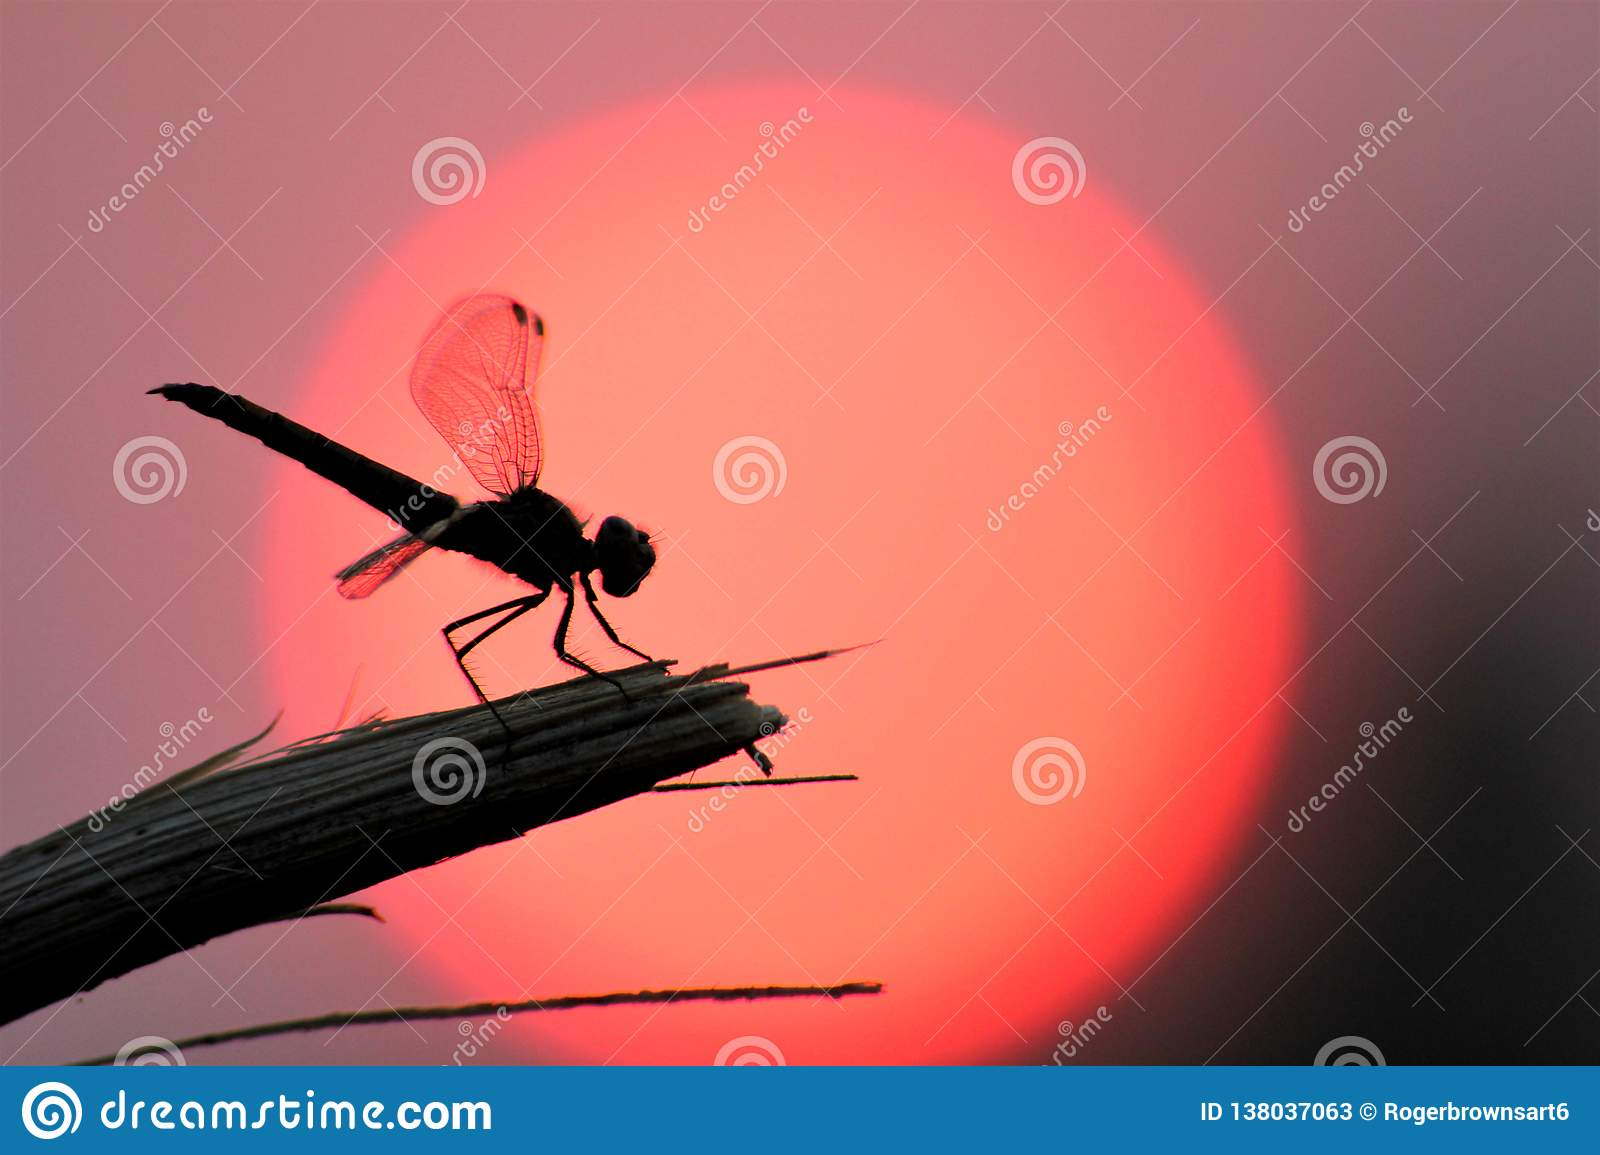 Dragonfly resting in front of the setting sun.